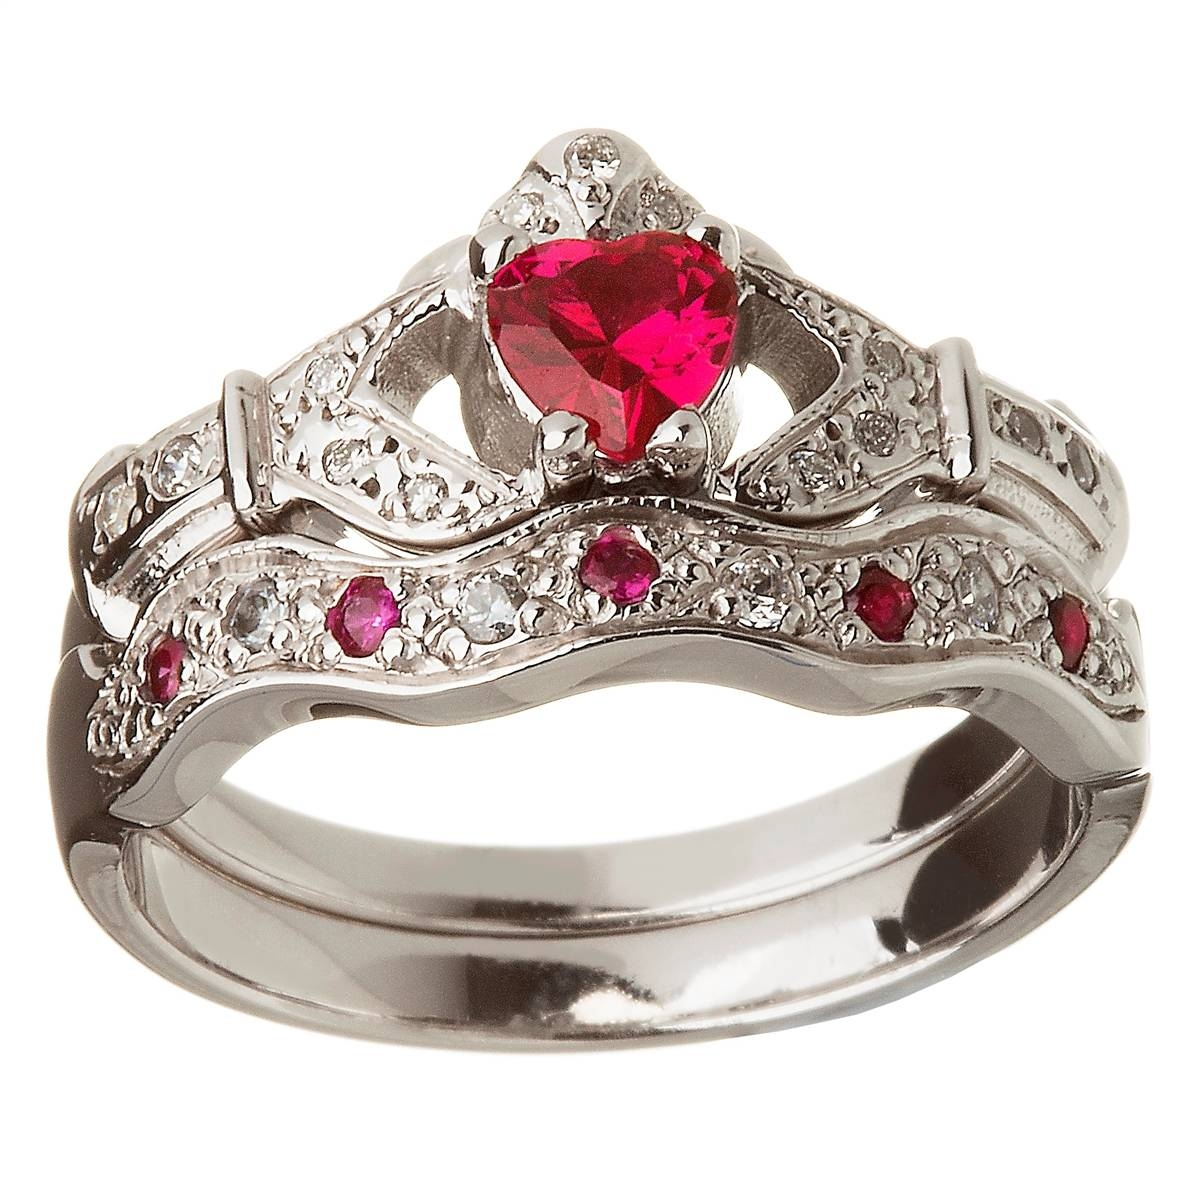 14K White Gold Ruby Set Heart Claddagh Ring & Wedding Ring Set With Regard To Claddagh Rings Engagement (View 2 of 15)